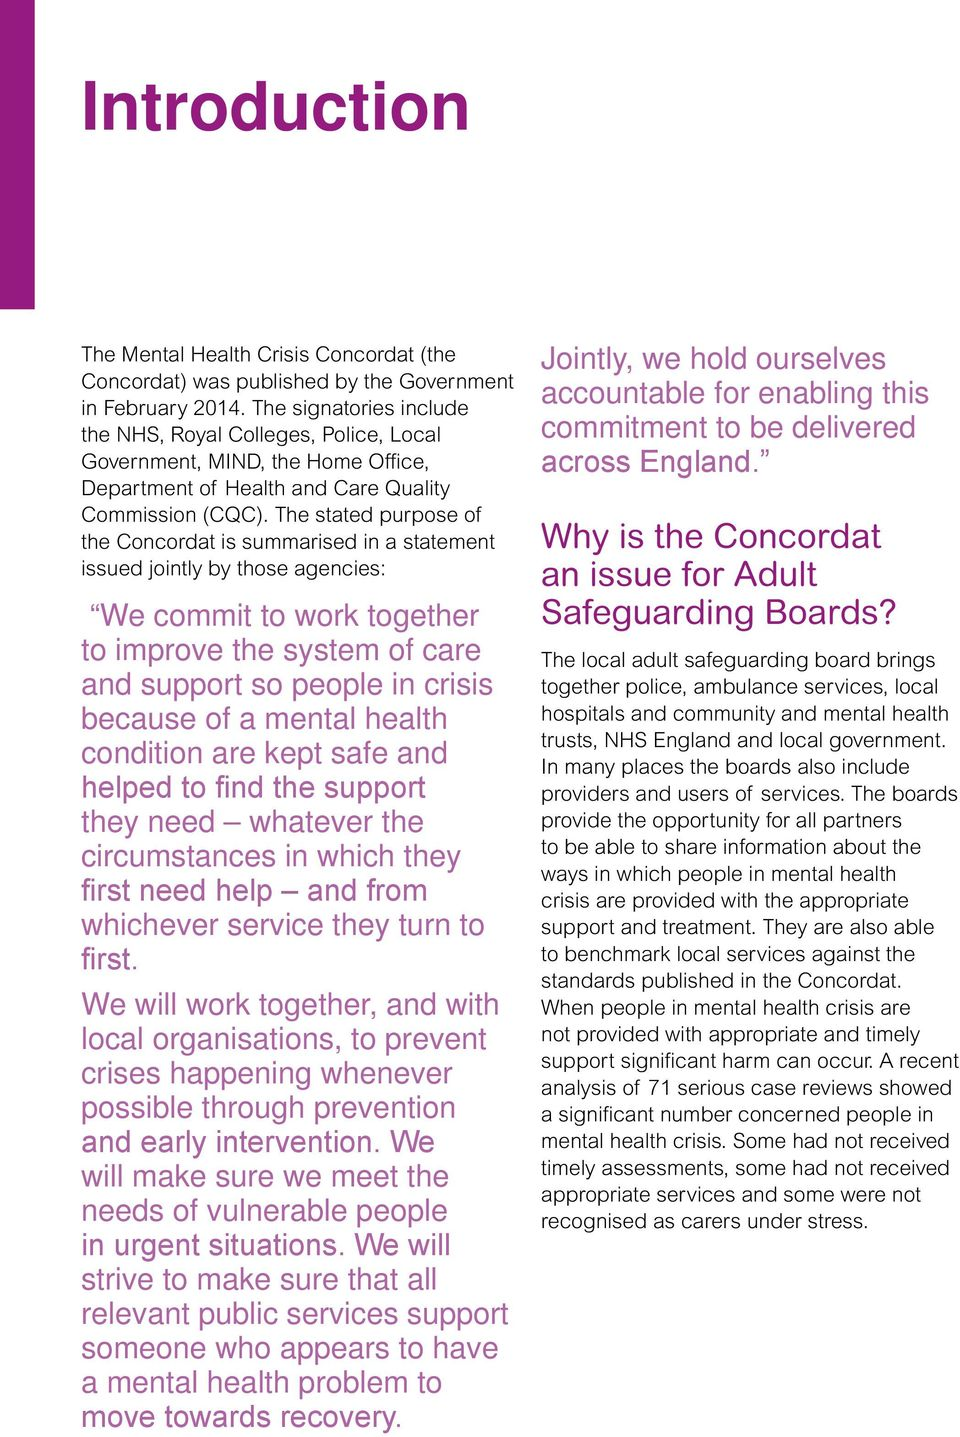 The stated purpose of the Concordat is summarised in a statement issued jointly by those agencies: We commit to work together to improve the system of care and support so people in crisis because of